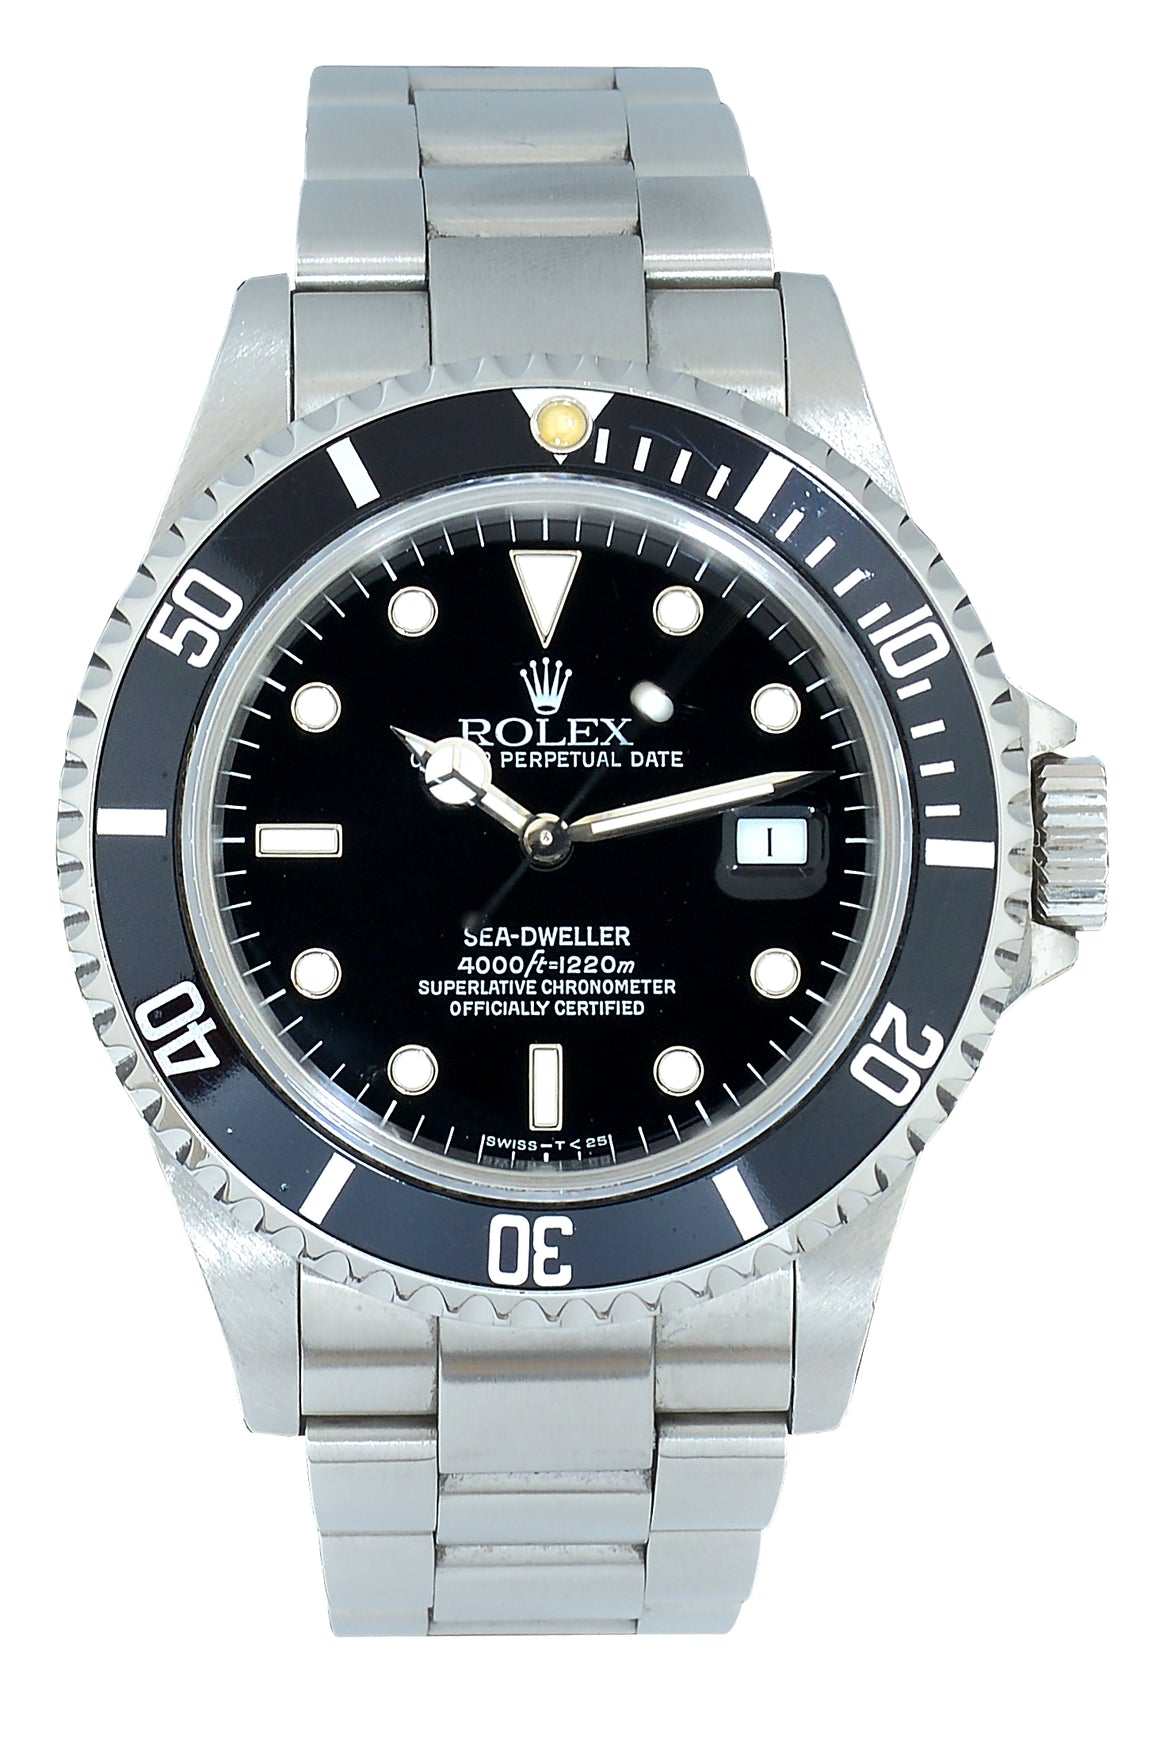 Rolex Sea-Dweller Ref: 16600, With Papers